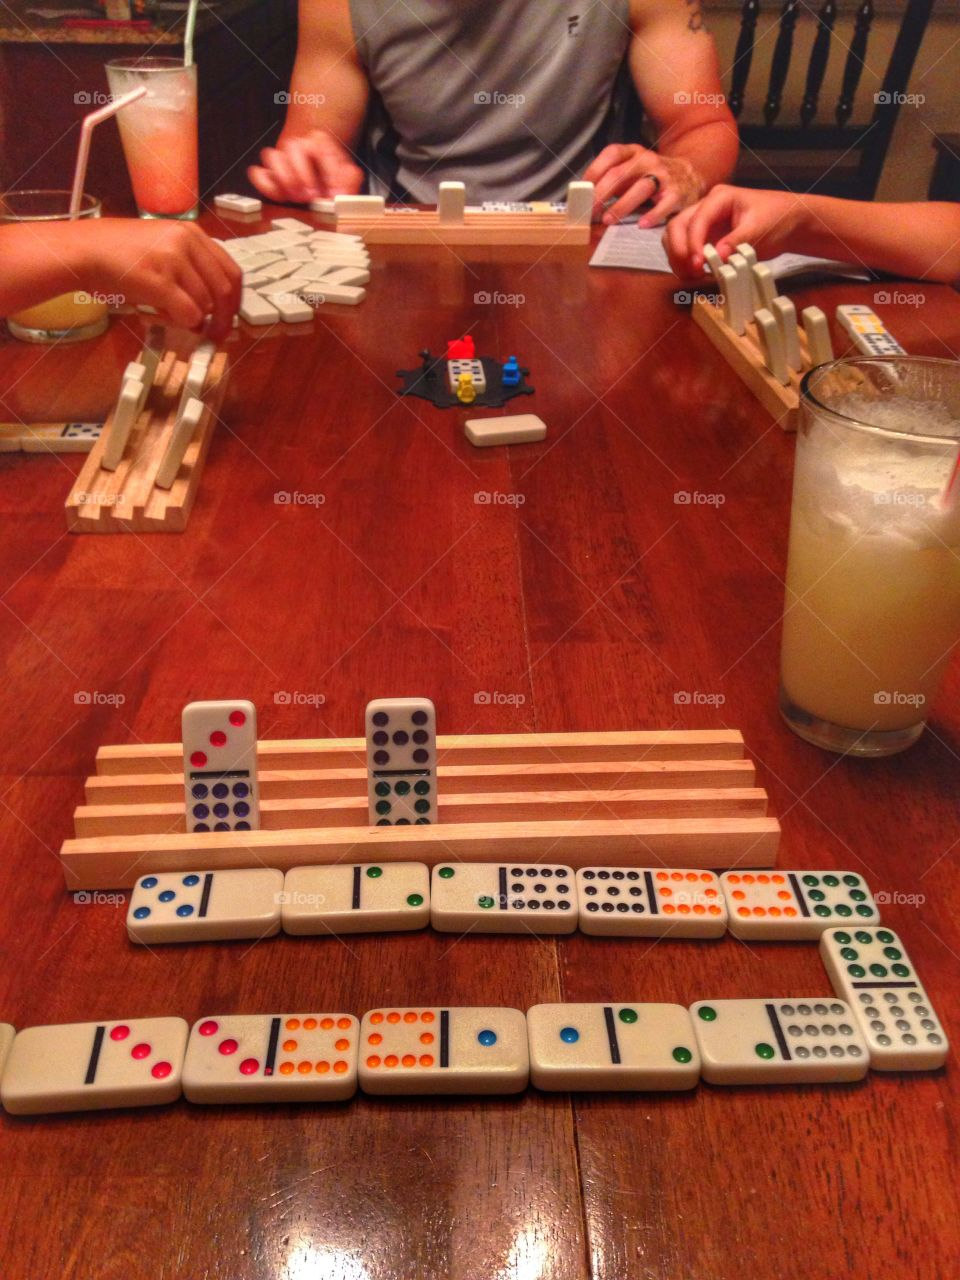 Family game night . Family playing a game of Mexican train